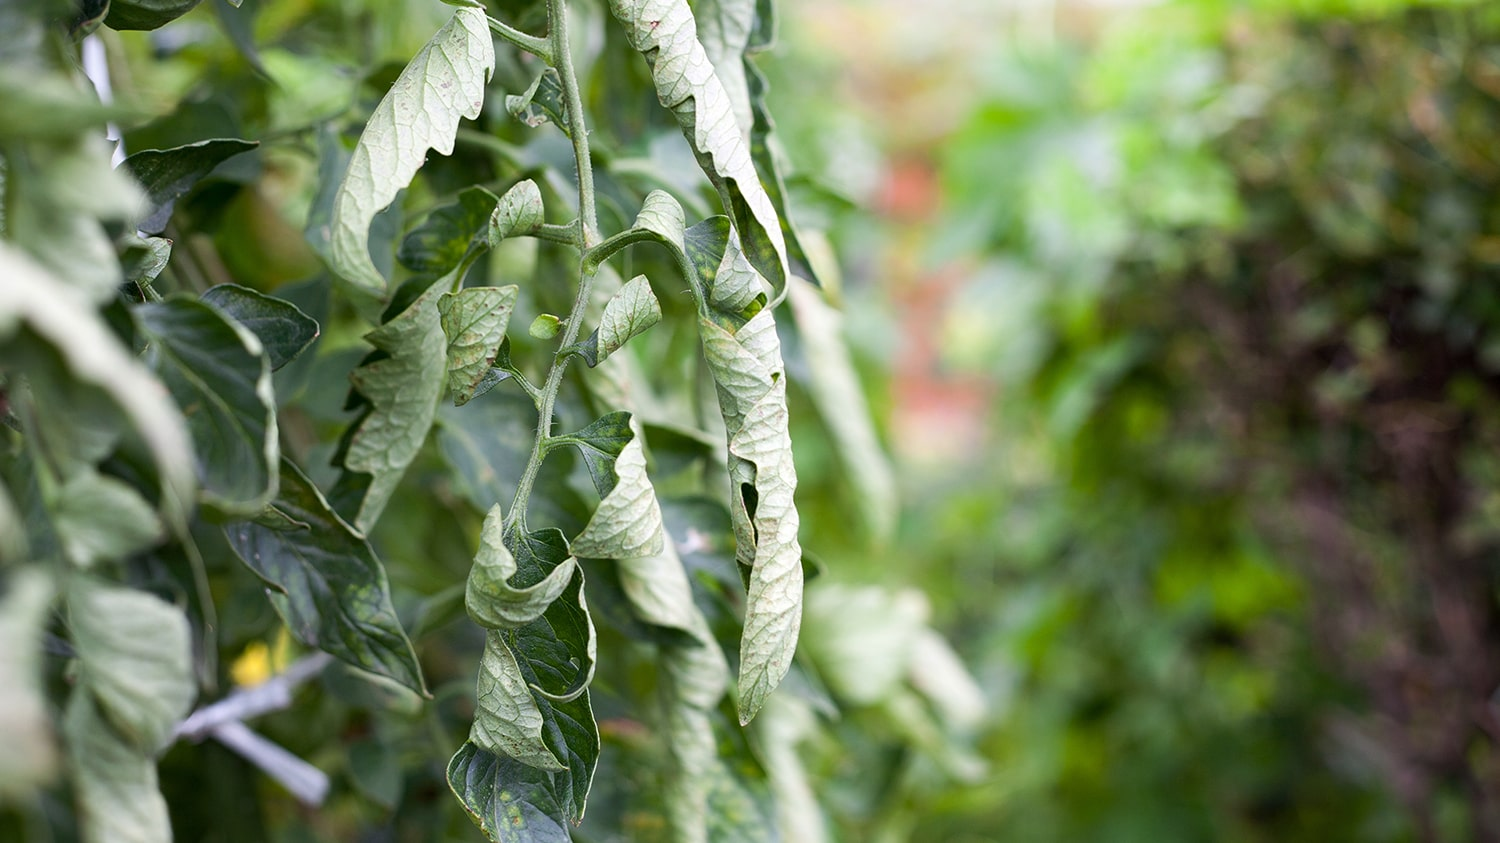 Wilted Plant - Keeping Plants Healthy in the Heat Blog